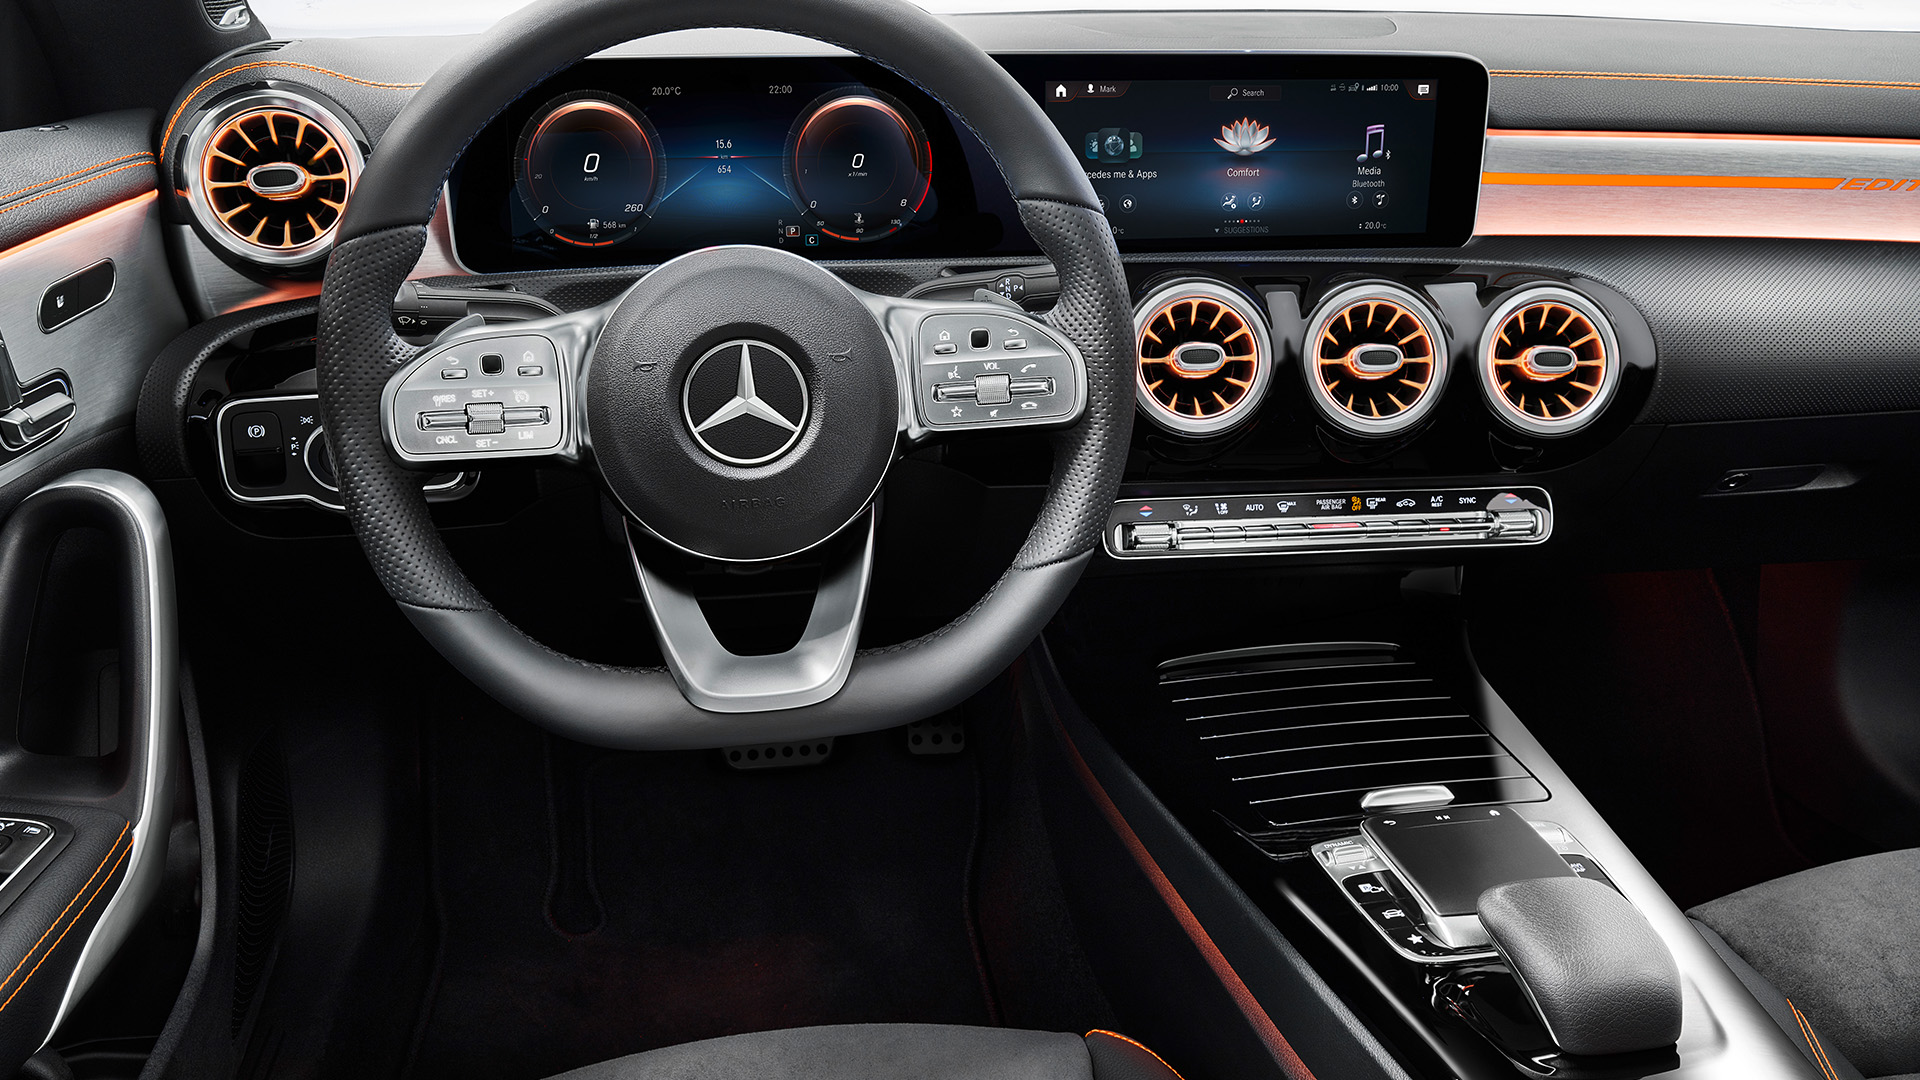 2020_mercedes_benz_cla_interior_8